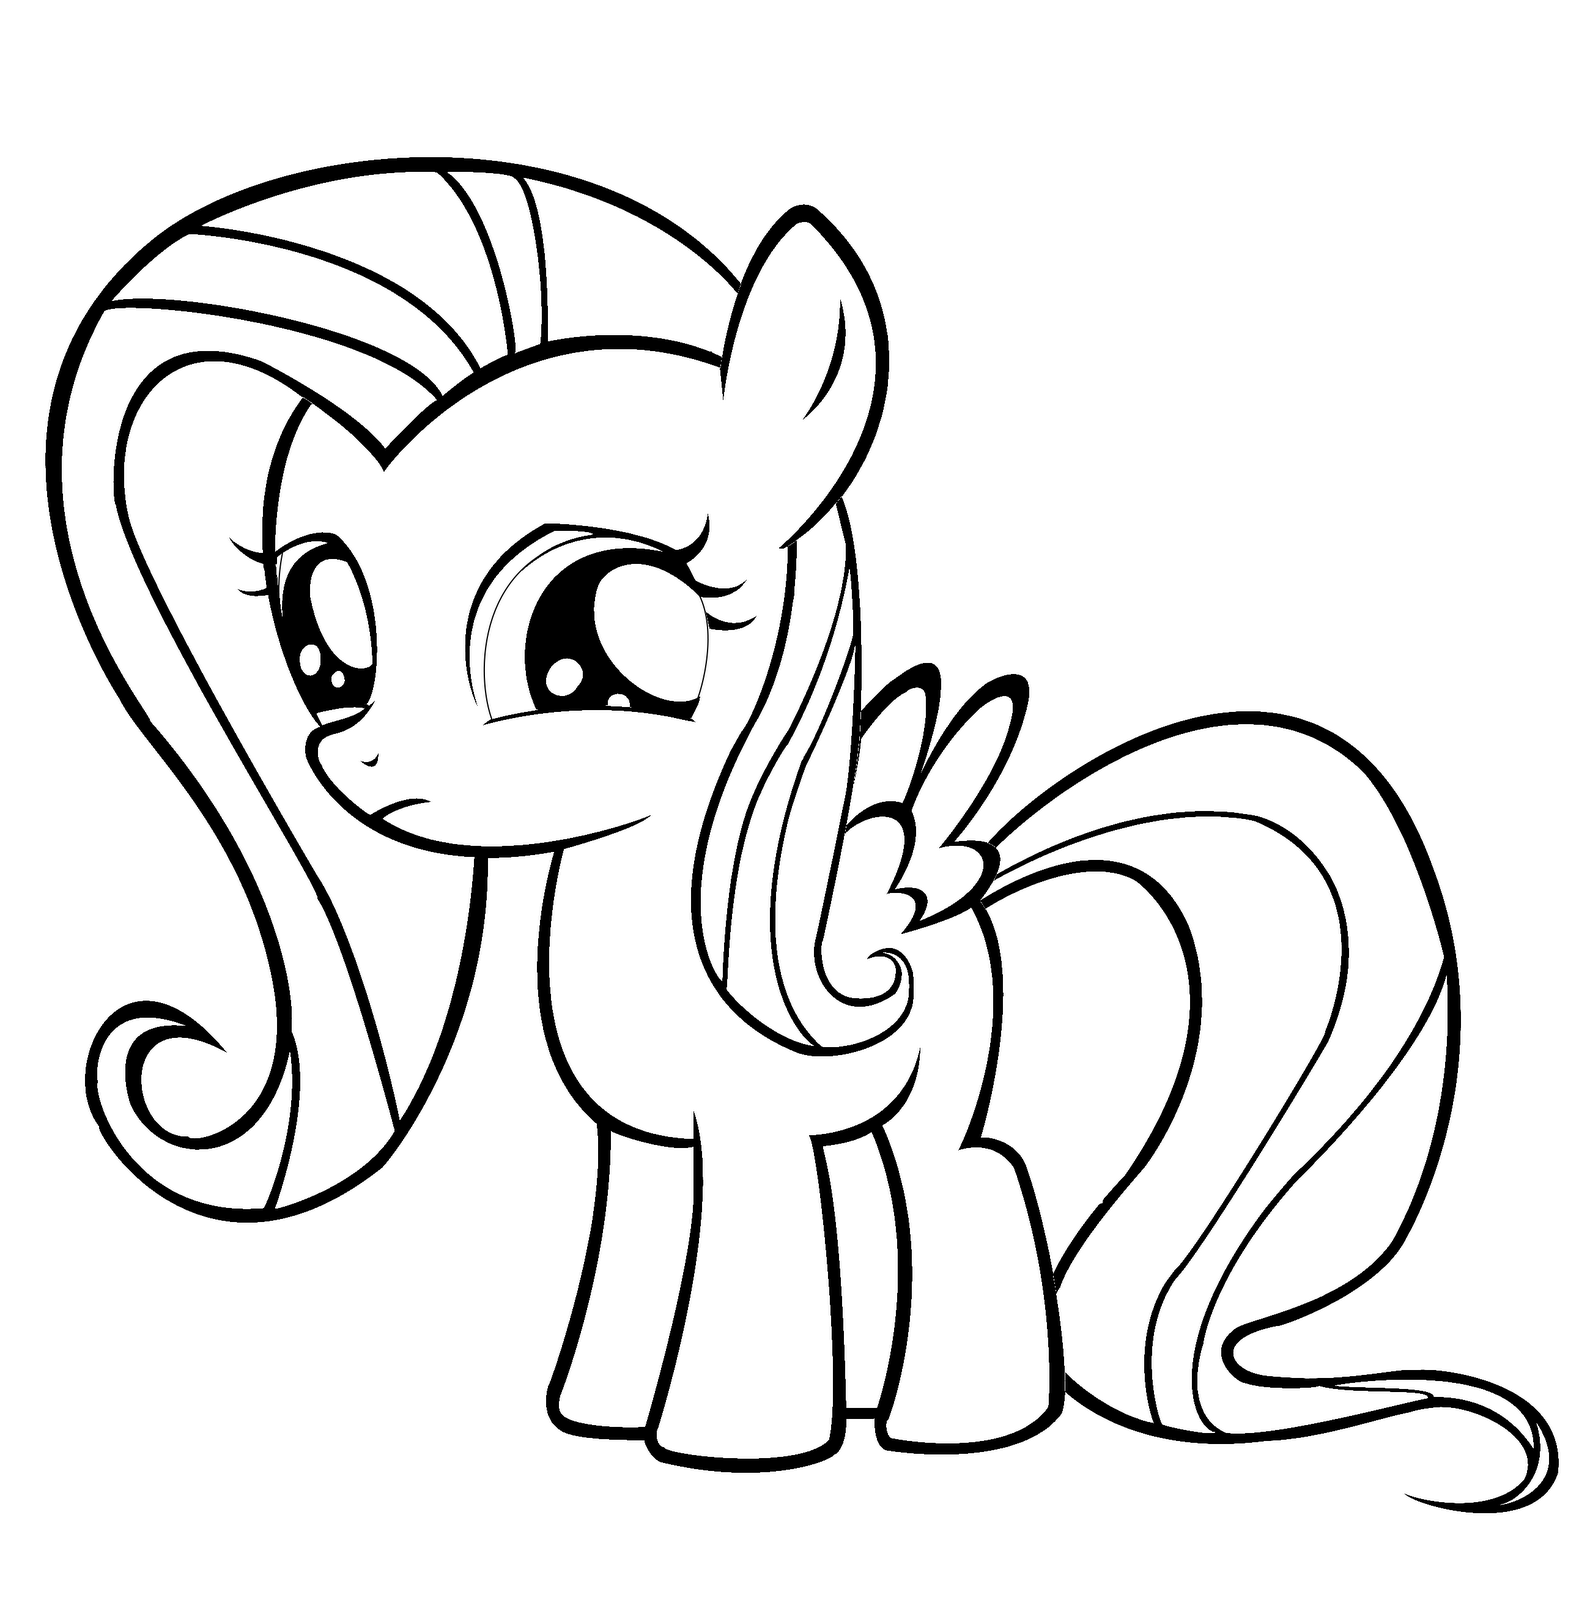 Fluttershy Coloring Pages Best Coloring Pages For Kids Coloring Pages Images